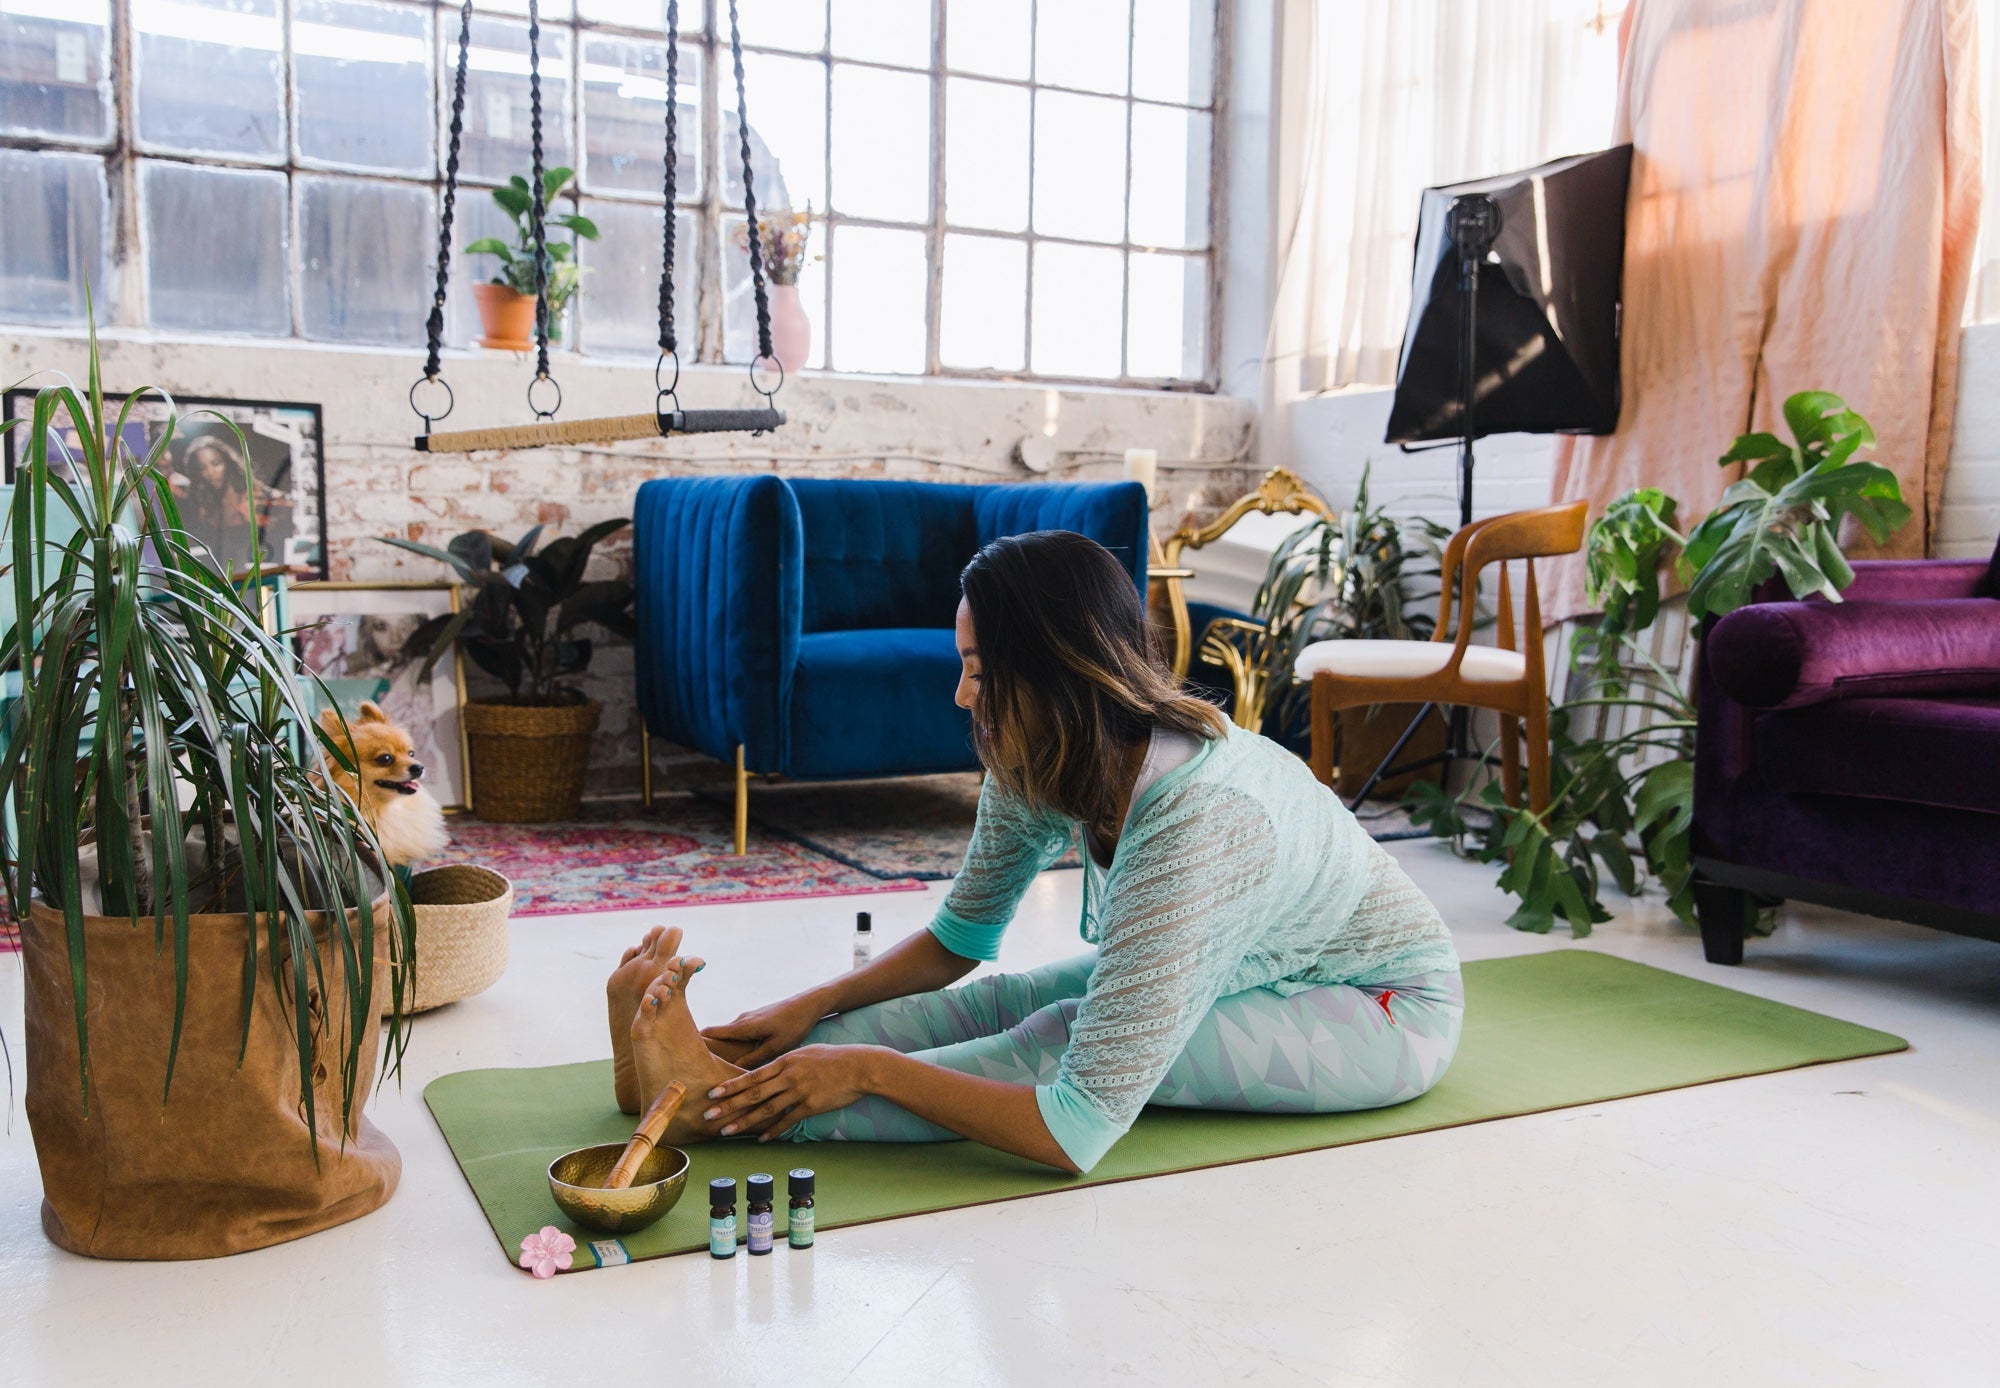 A woman practices yoga in a loft apartment